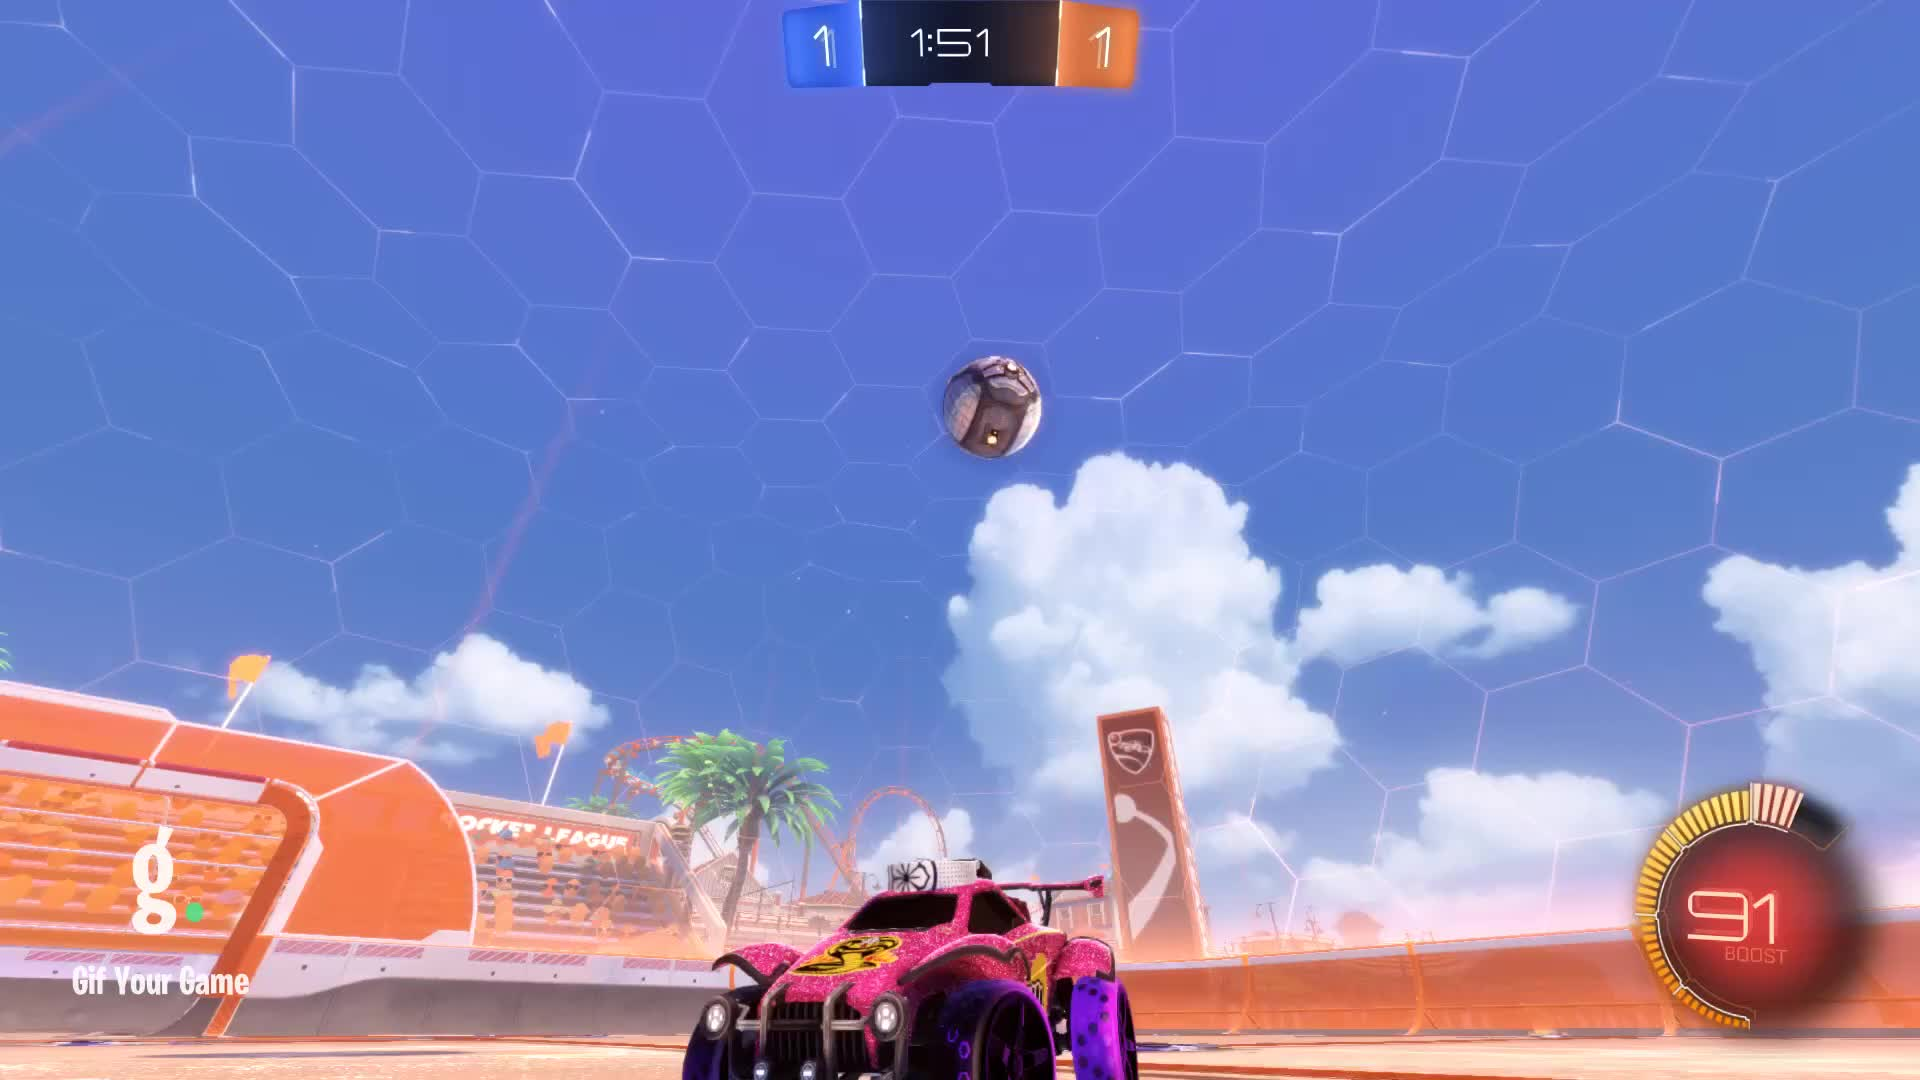 Gif Your Game, GifYourGame, Goal, Rocket League, RocketLeague, SoGongDongTofu, Goal 3: SoGongDongTofu GIFs